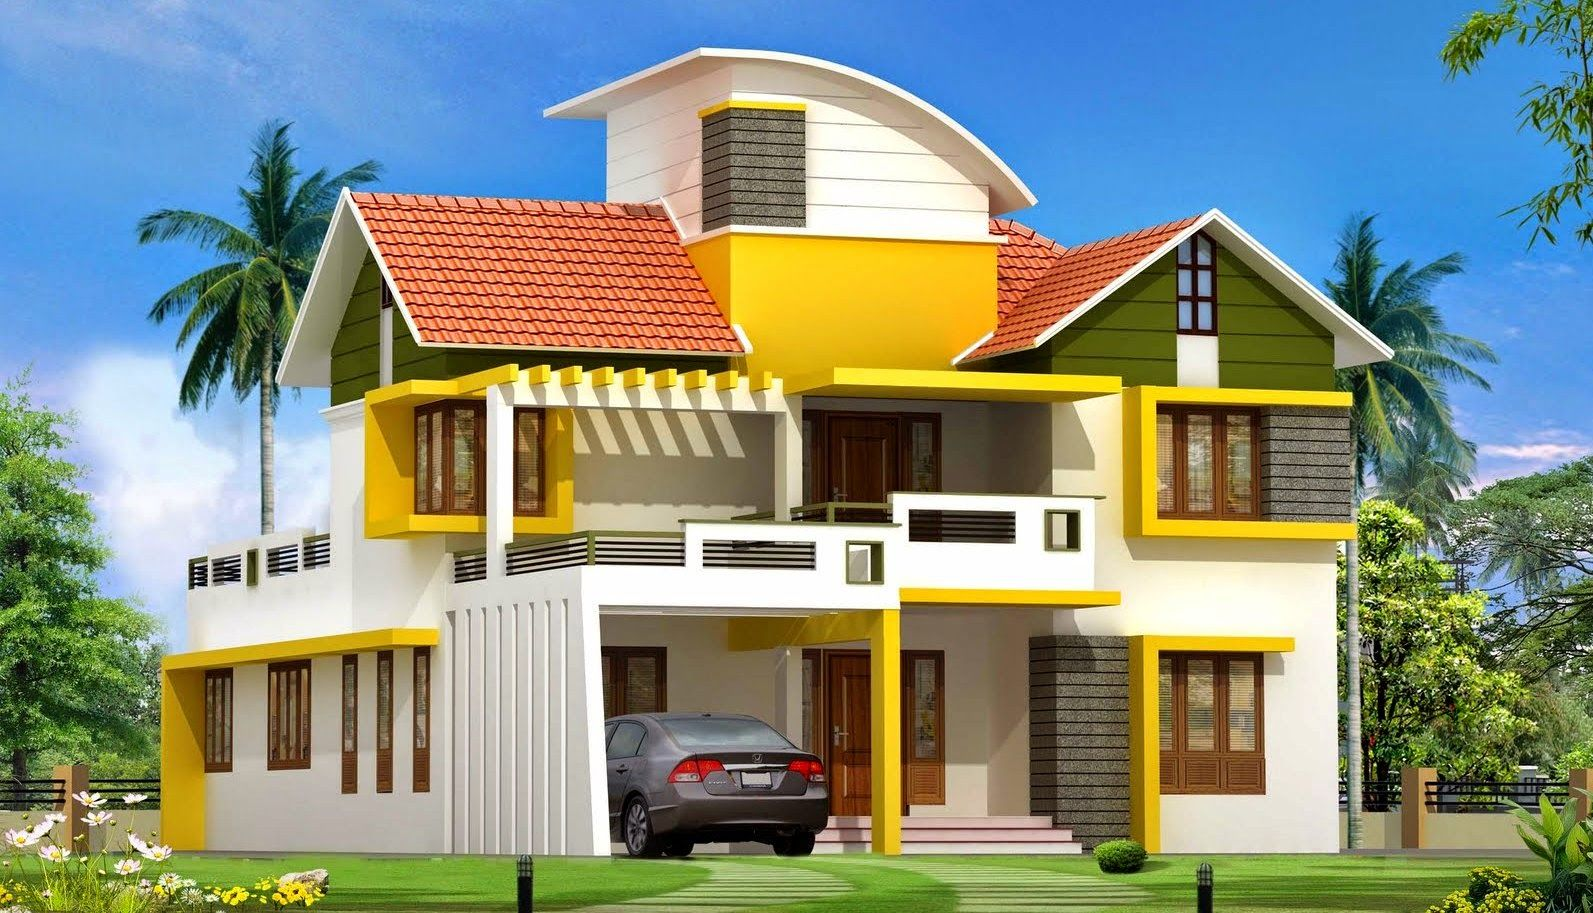 kerala home design new modern houses home interior design trends - New Contemporary Home Designs